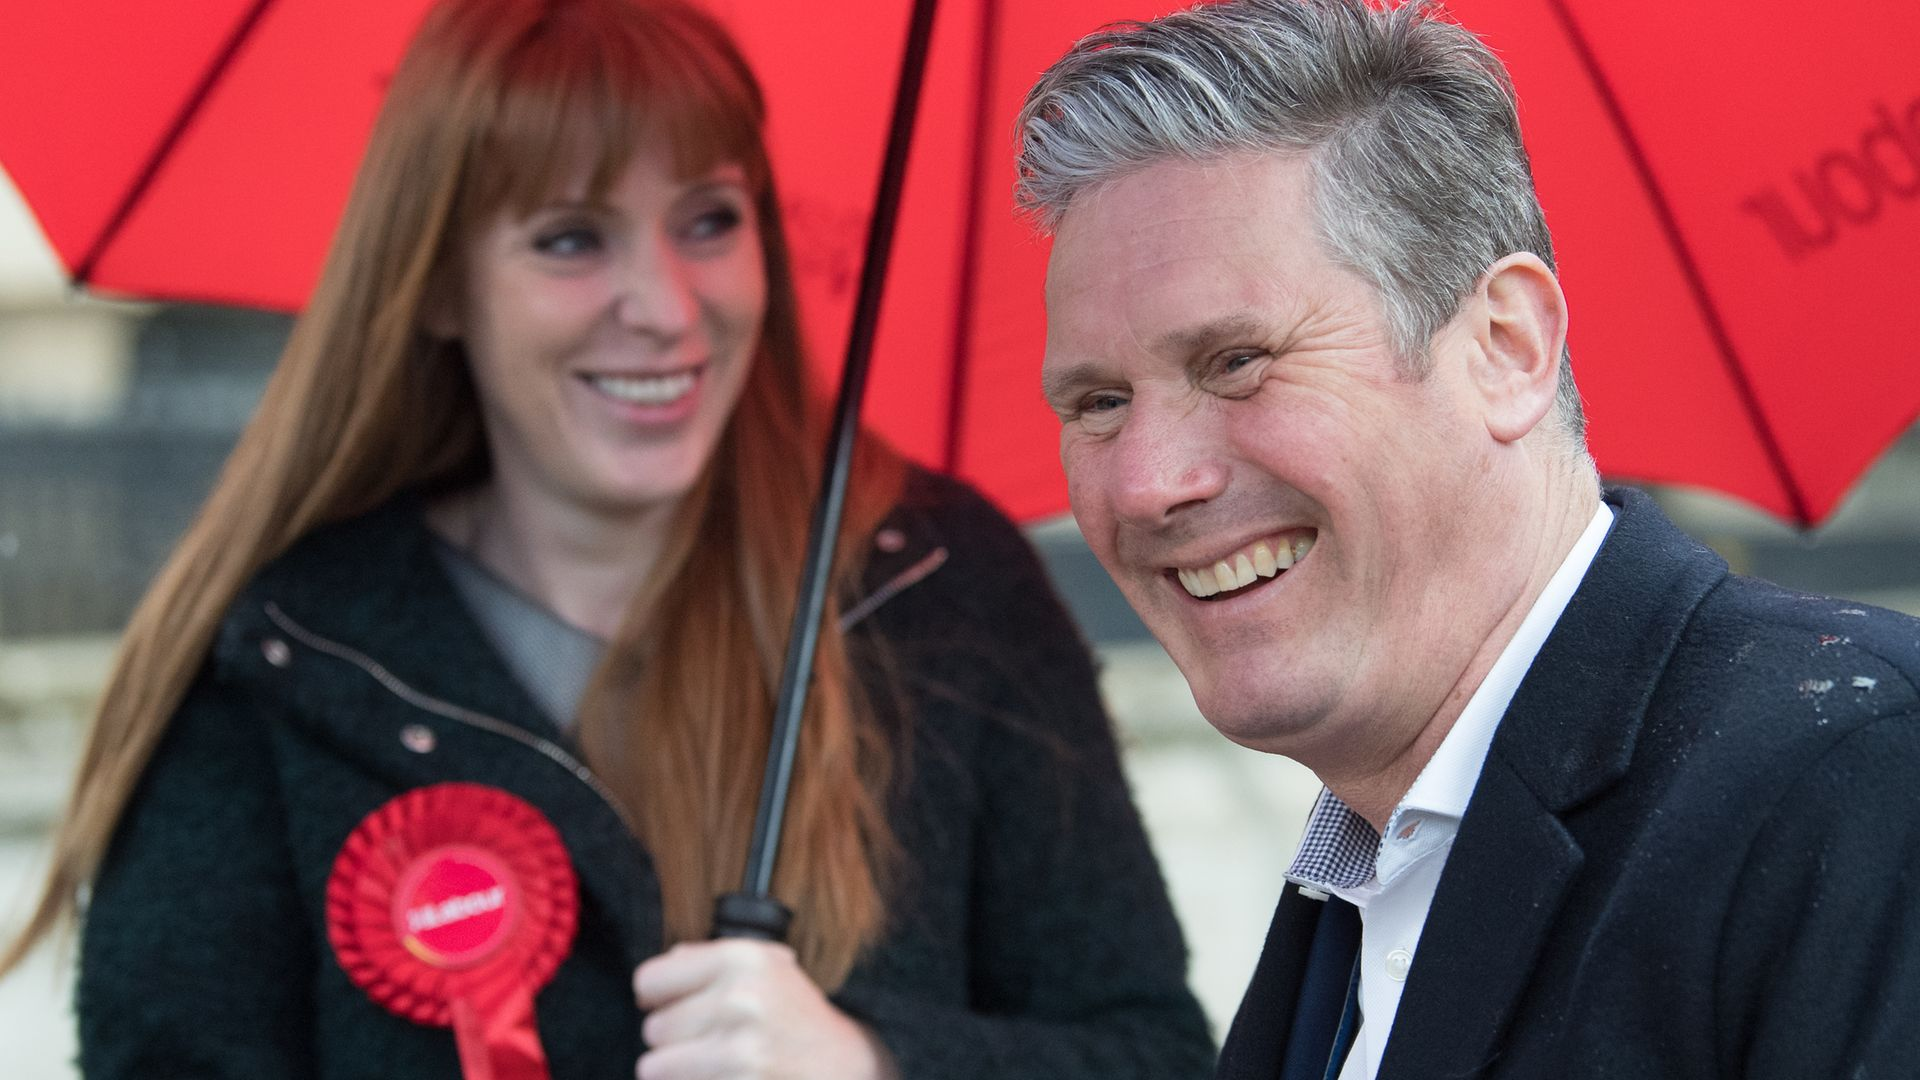 Leader of the Labour Party Sir Keir Starmer and Labour Deputy Leader, Angela Rayner (far right) during a visit to Birmingham - Credit: PA